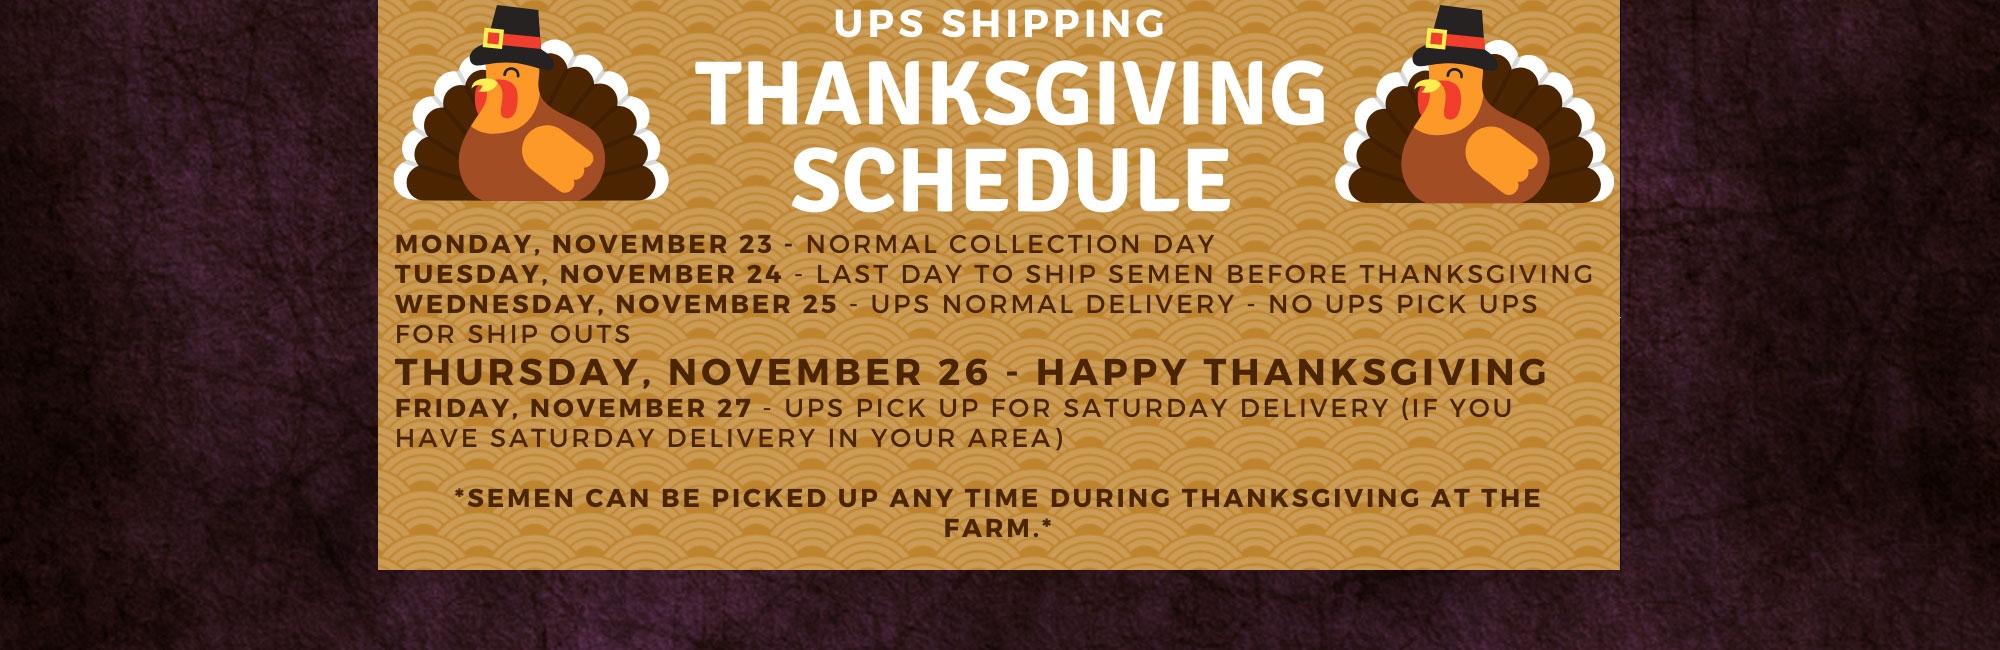 UPS Shipping Schedule